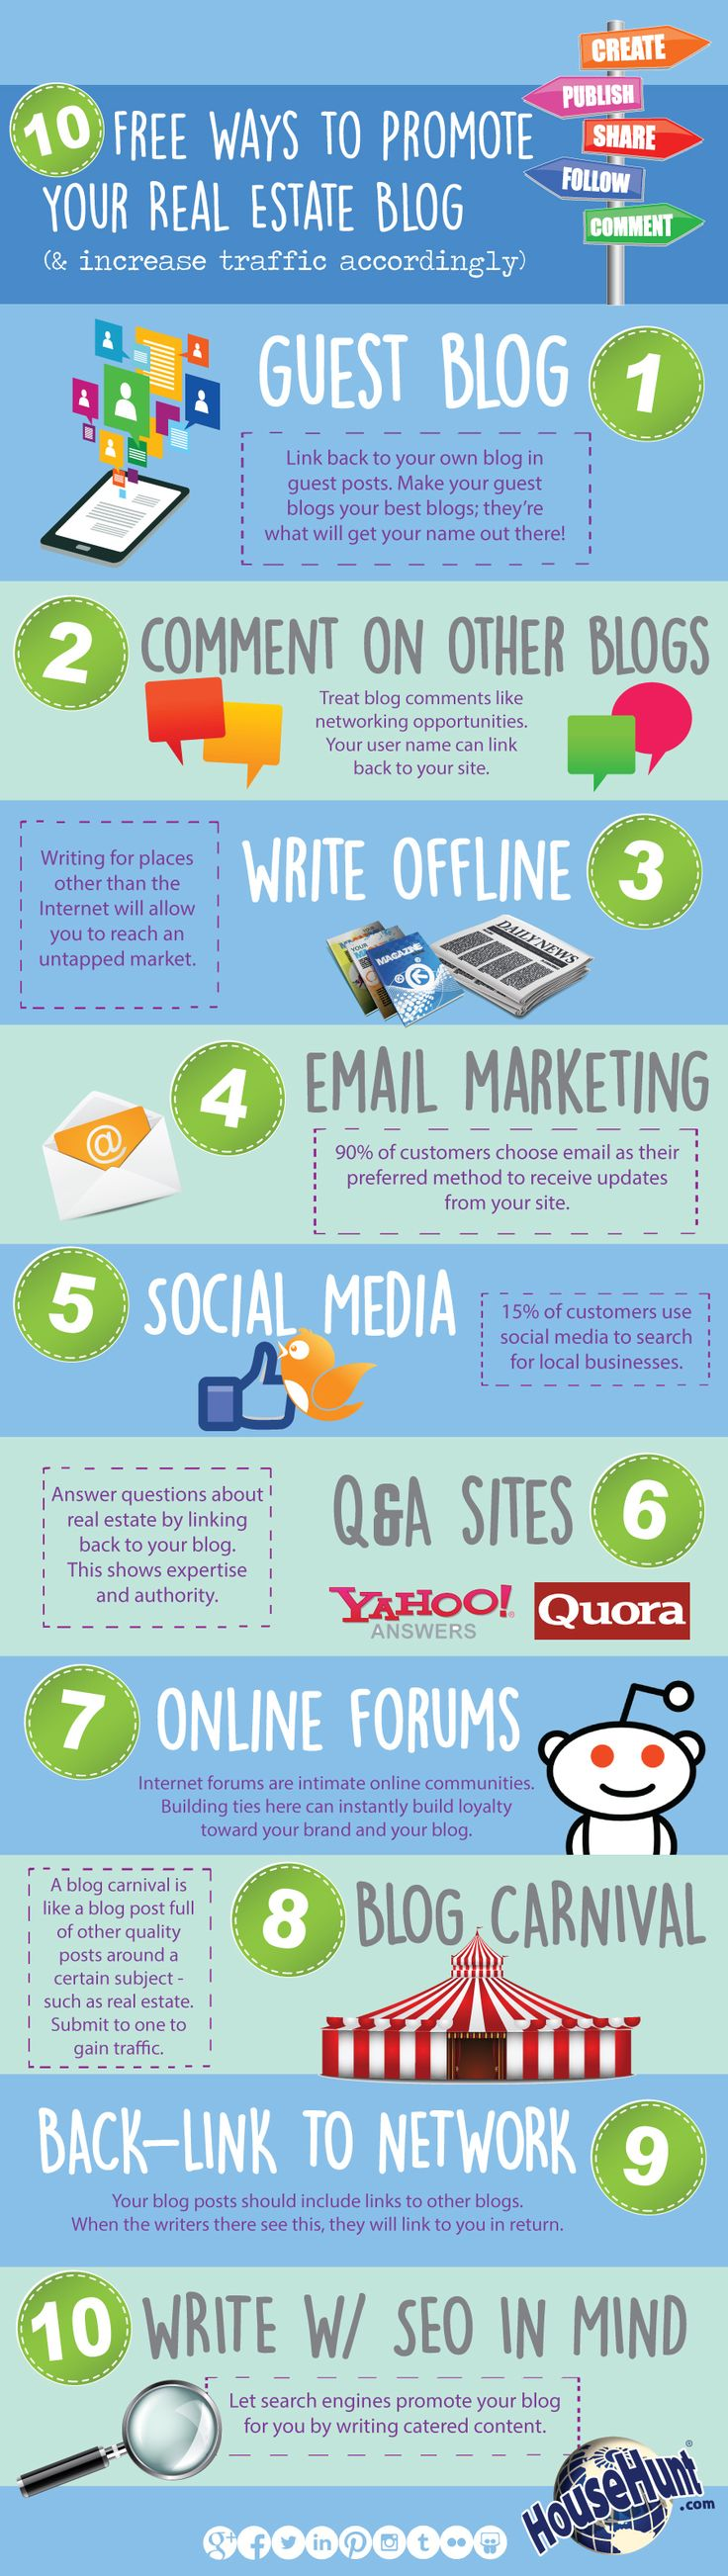 10 Free Ways to Promote Your Real Estate Blog [Infographic]